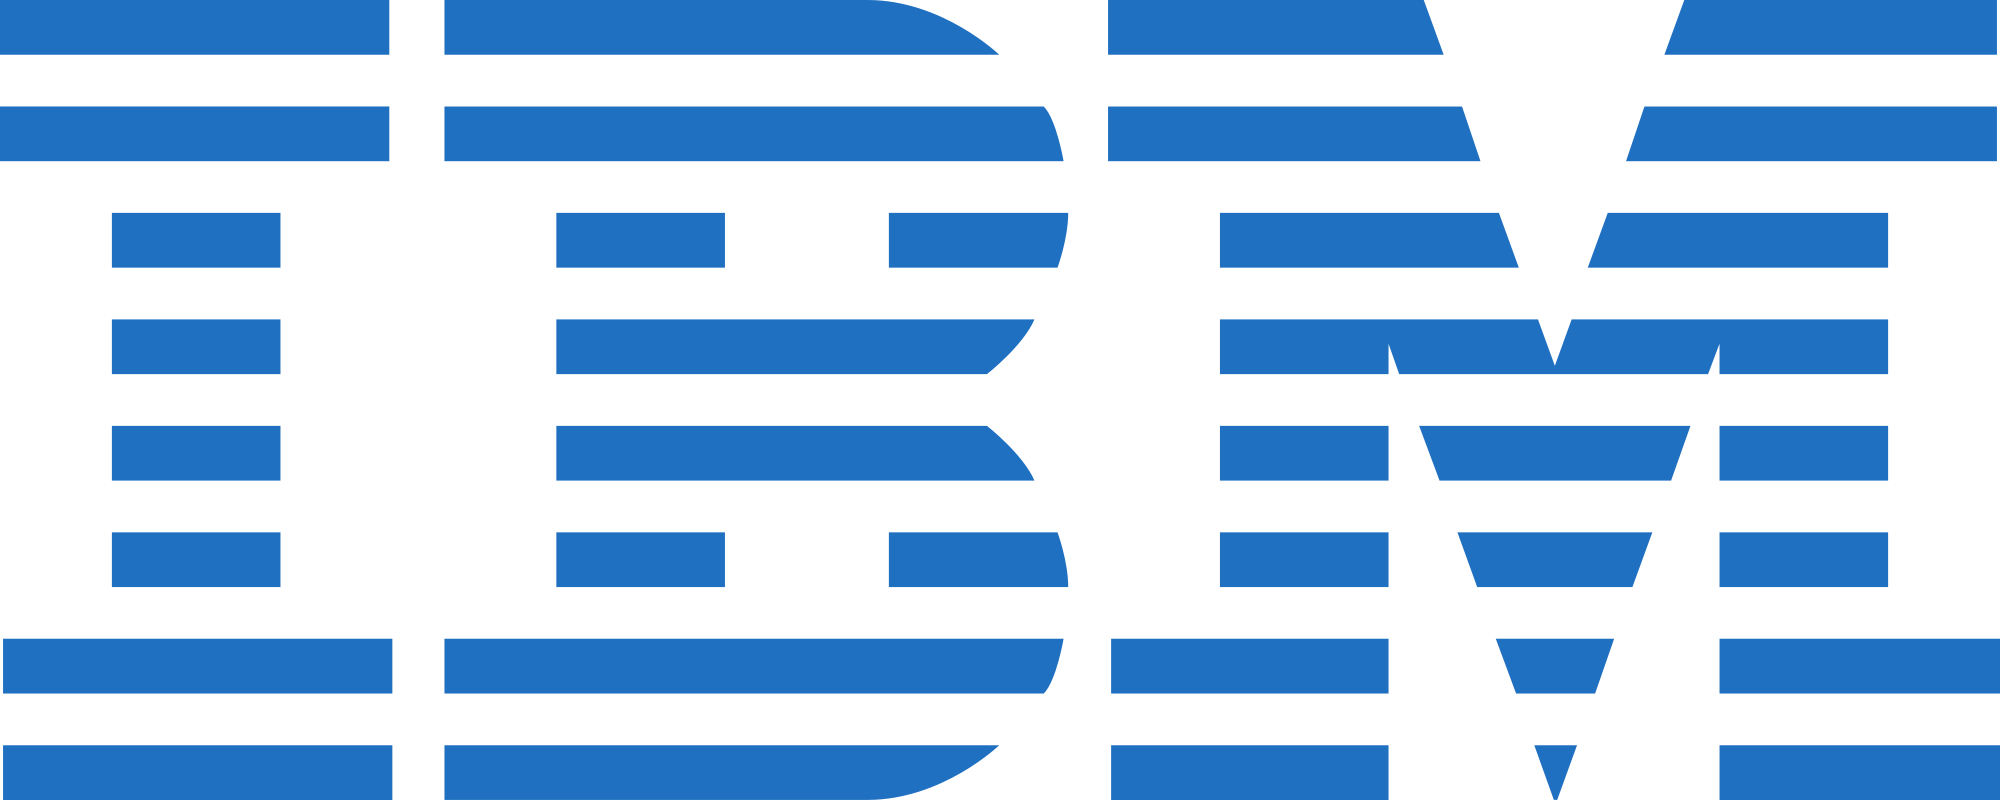 Now you can download Ibm PNG in High Resolution